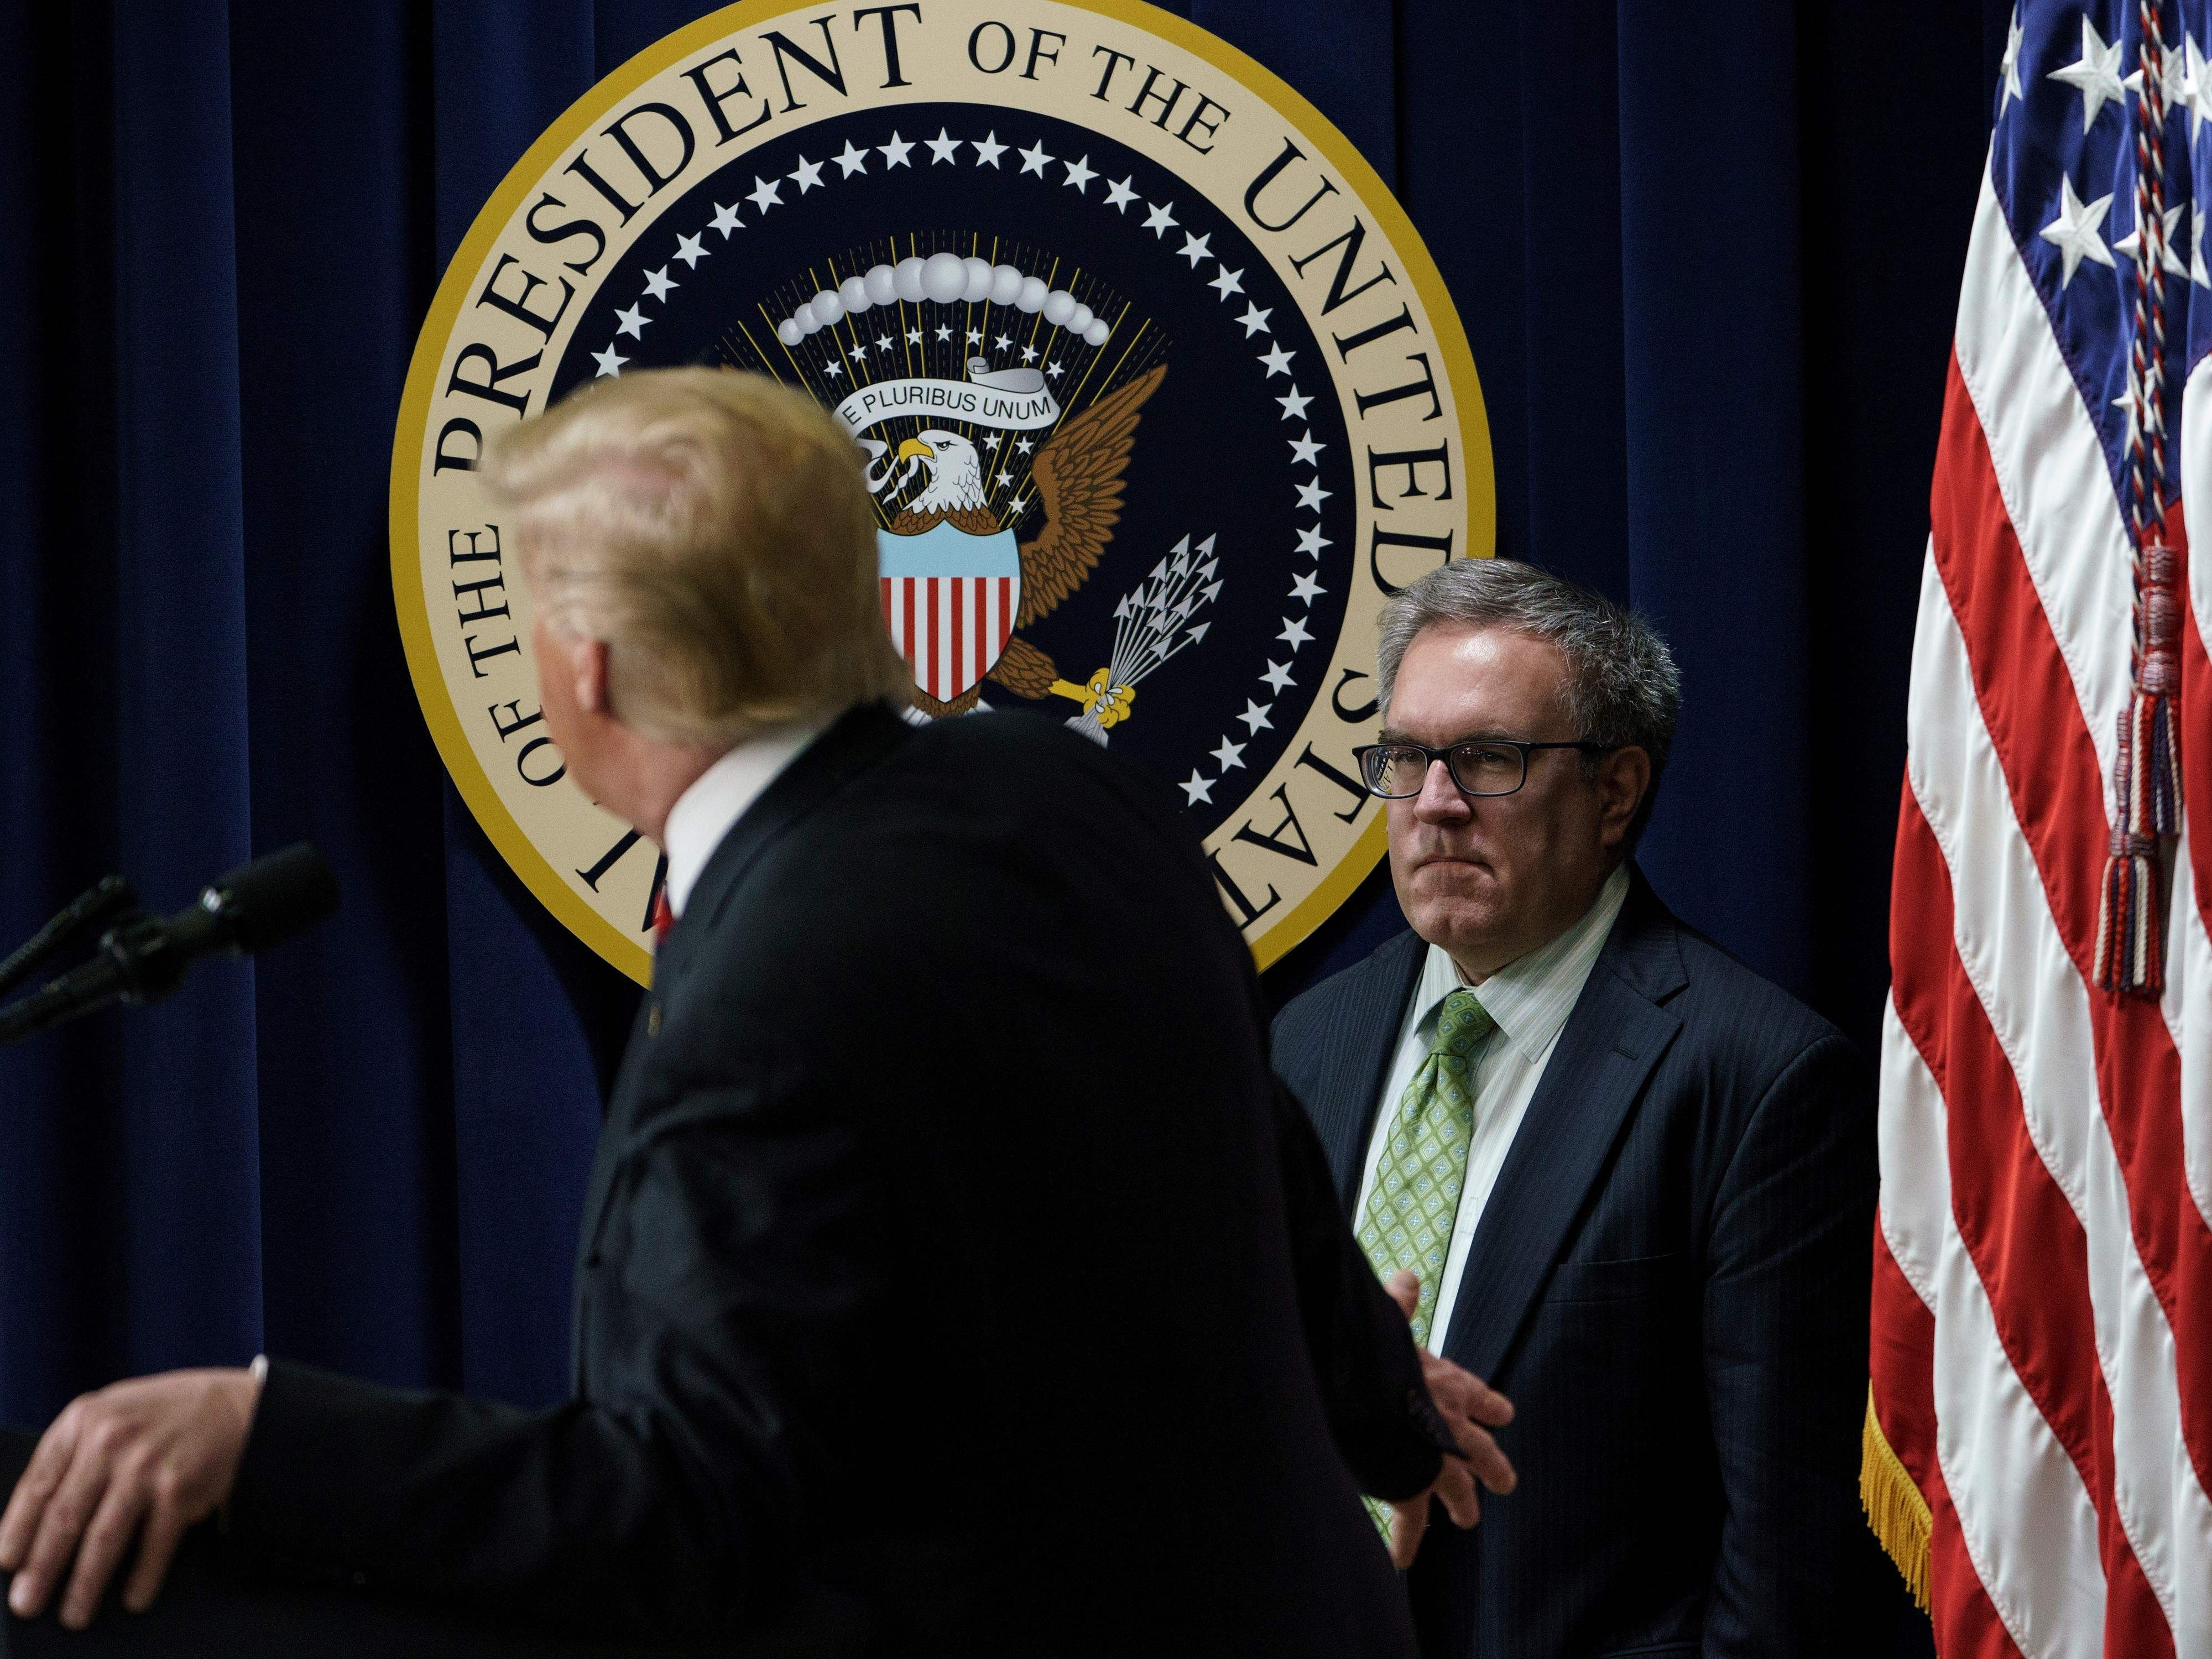 US President Donald Trump (L) gestures to EPA Acting Administrator Andrew Wheeler while talking to people from Hawaii, Alaska, and California during an event in the Eisenhower Executive Office Building on the White House campus October 23, 2018 in Washington, DC. (Photo by Brendan Smialowski / AFP)BRENDAN SMIALOWSKI/AFP/Getty Images ORIG FILE ID: AFP_1A917T